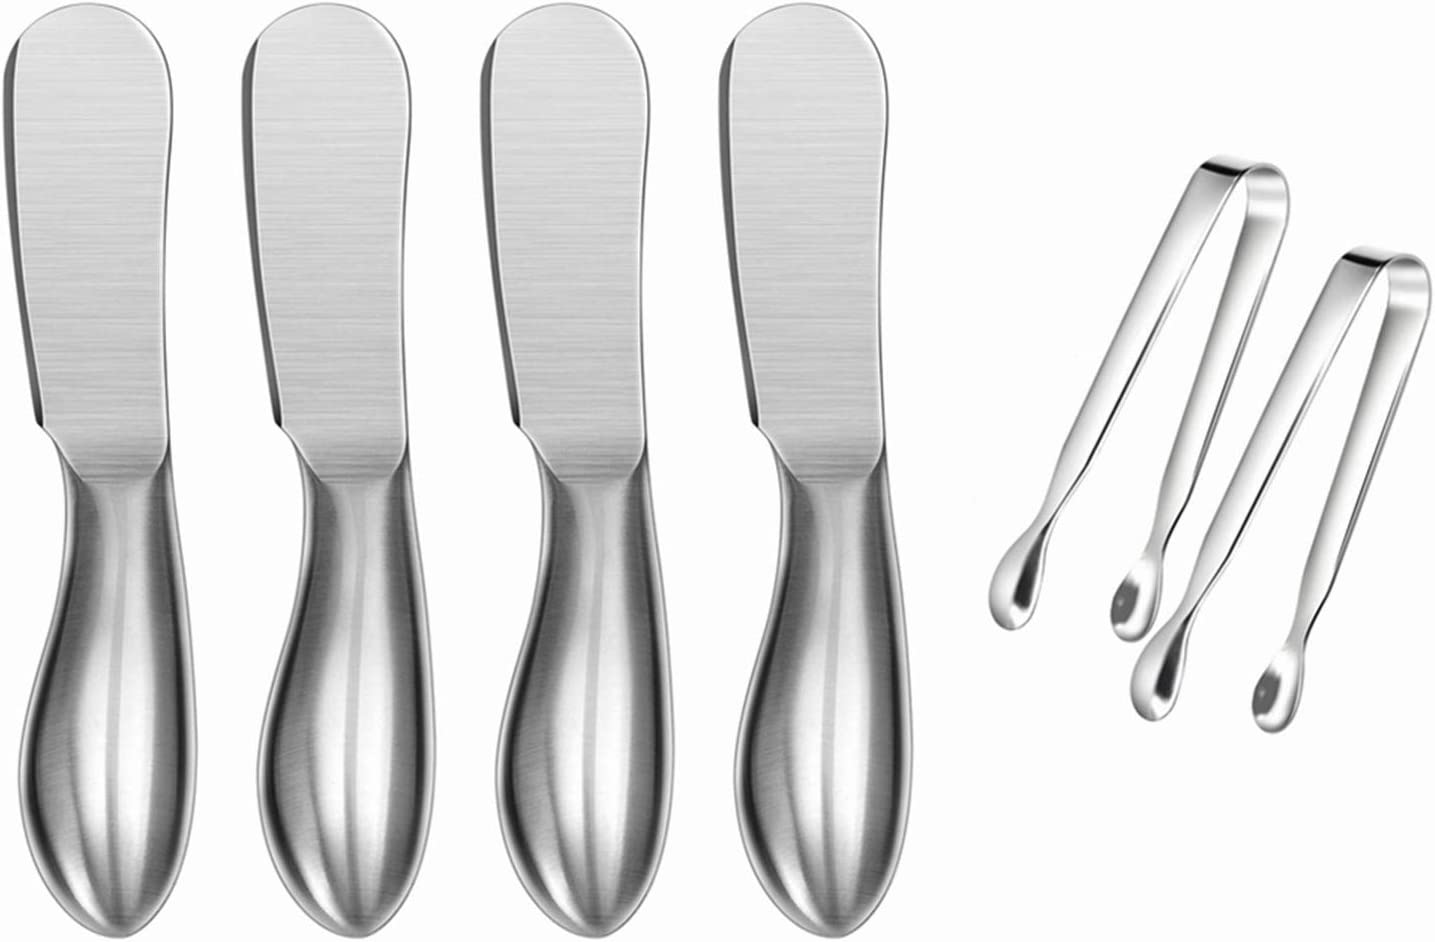 Sweetfamily Spreader SEAL limited product Knife Set 6-Piece Cheese Spreade Butter Recommended and